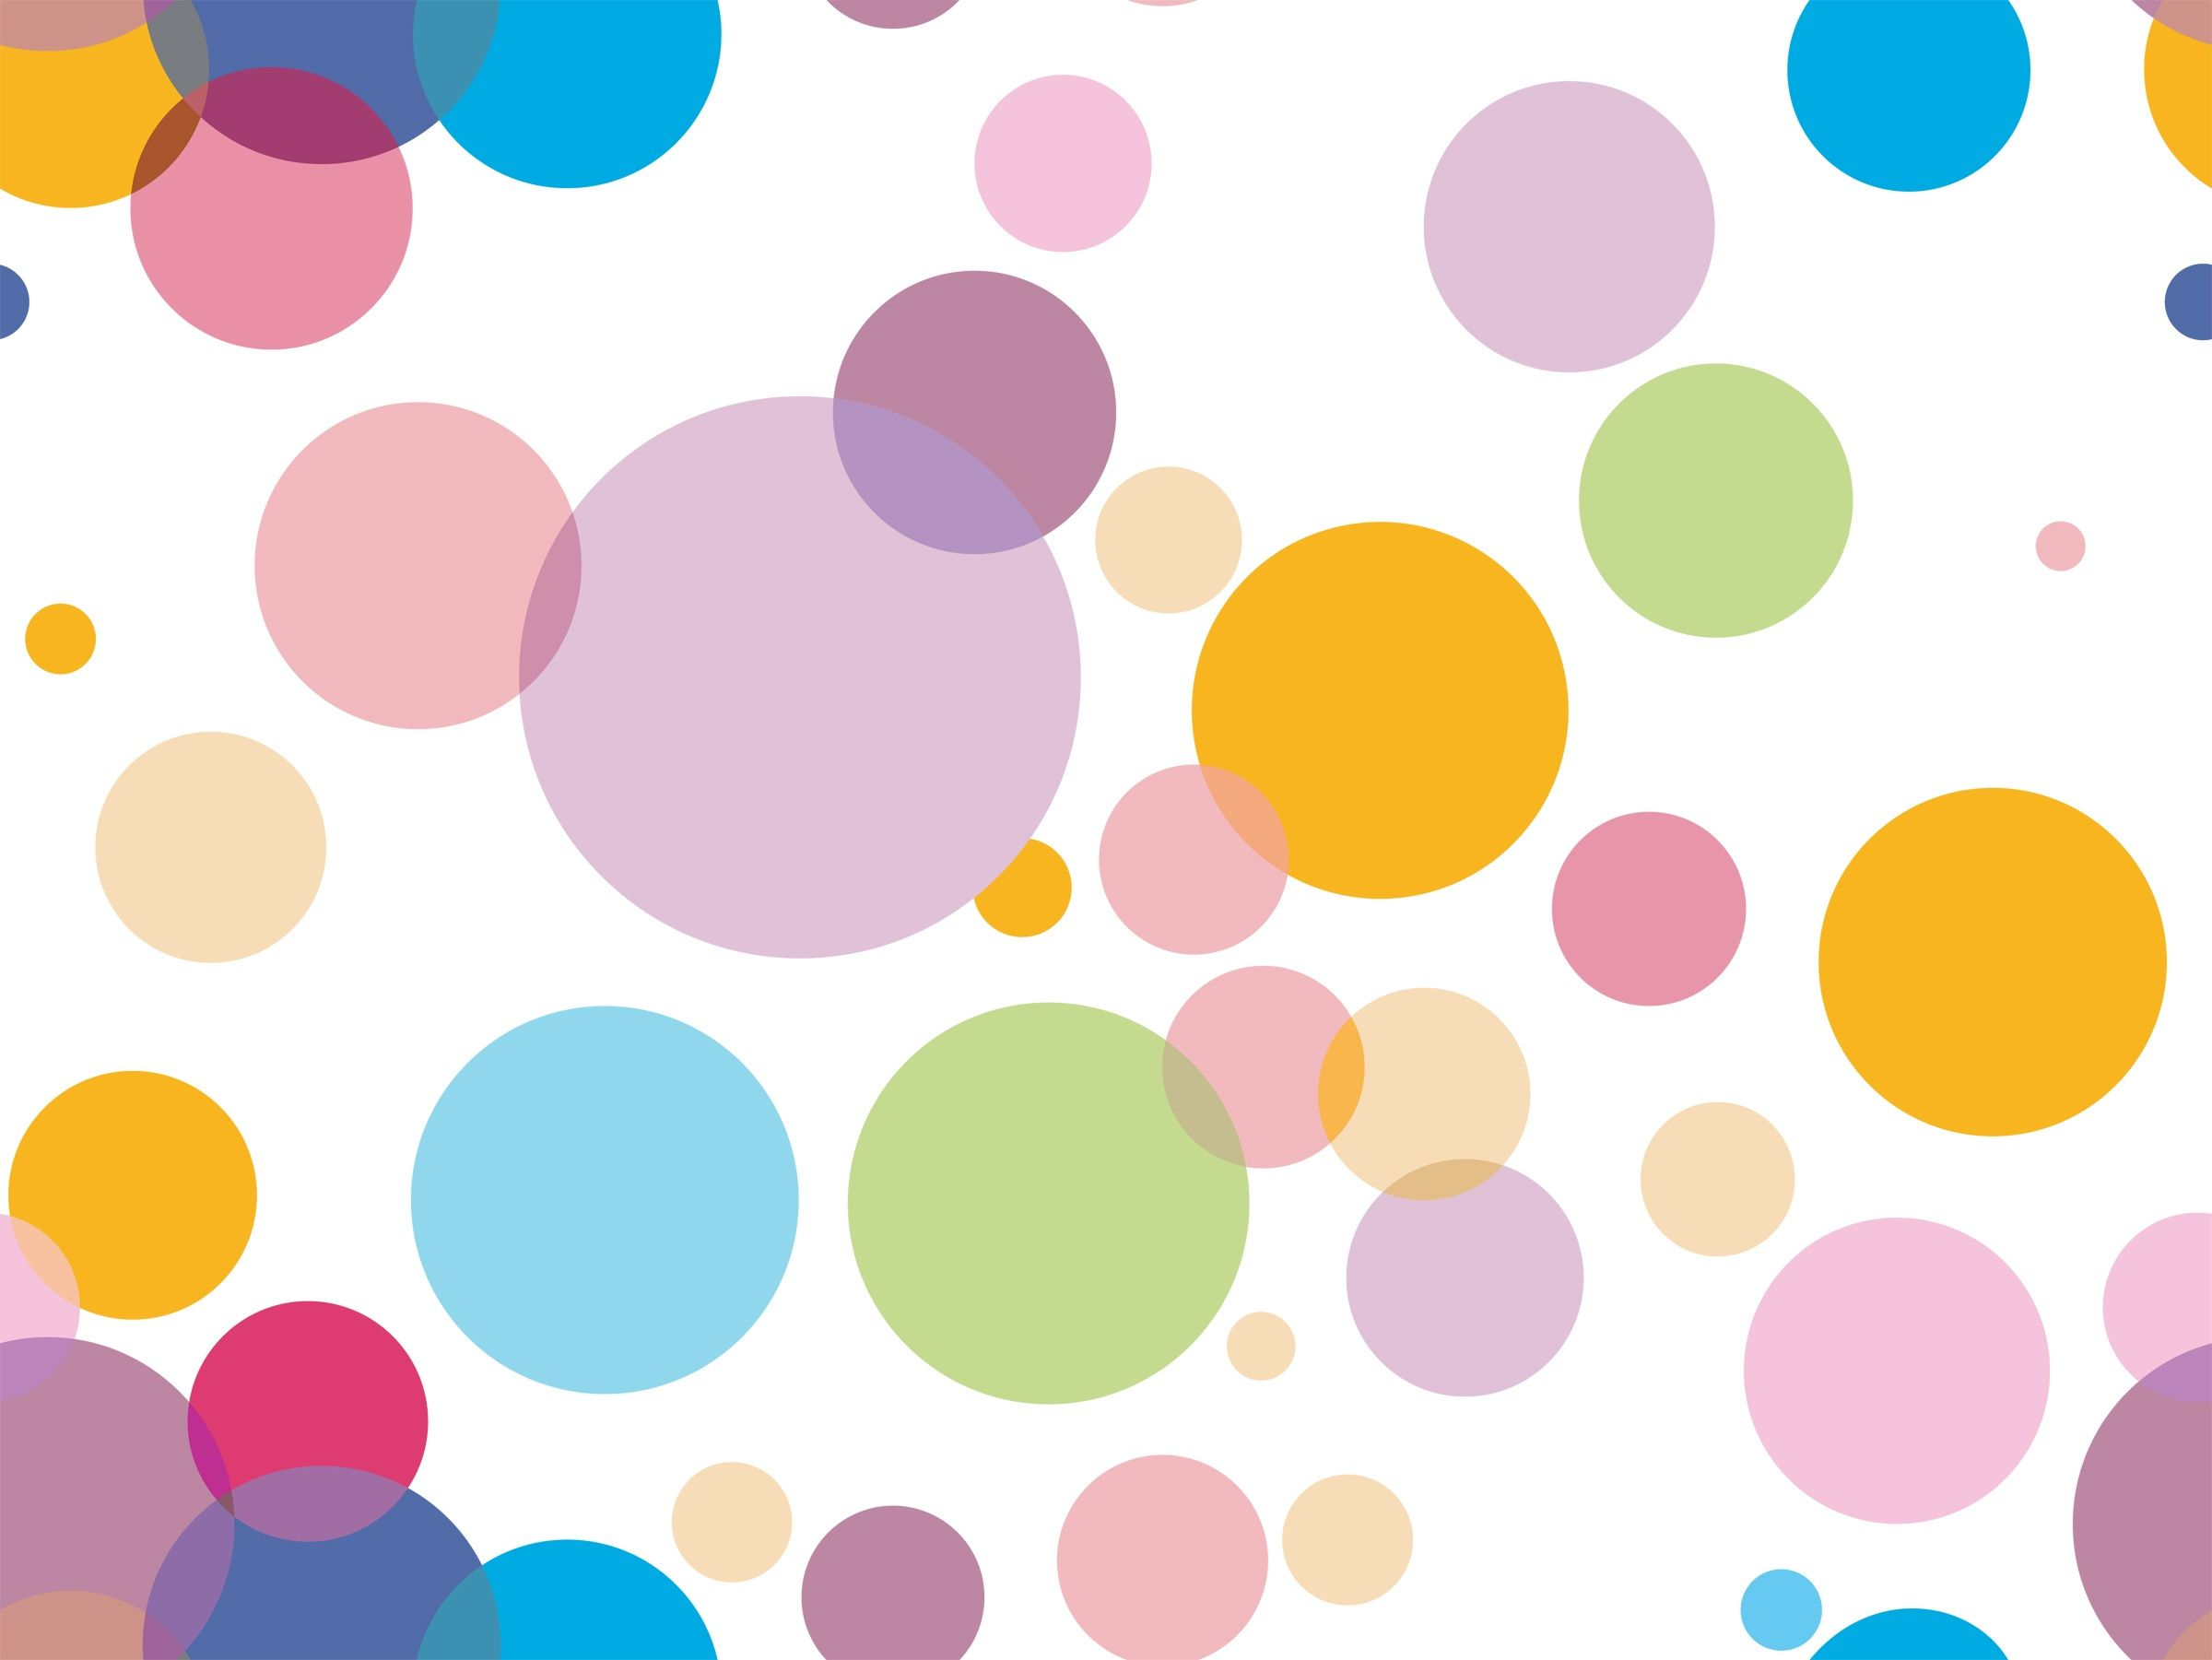 Polka Dot Coloring Pages | Polka Dots colouring pages (page 2 ...